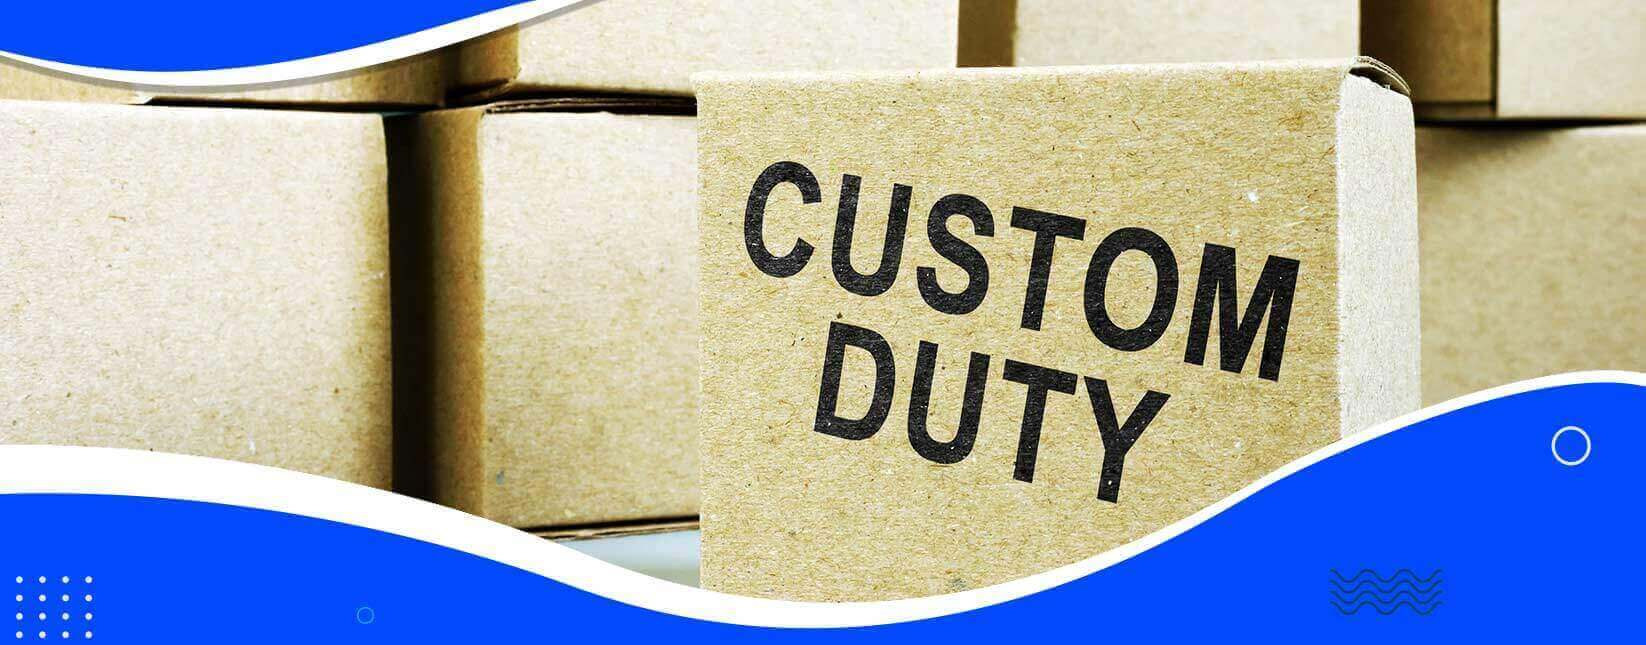 Import Duties in India: What it Costs to Clear your Goods